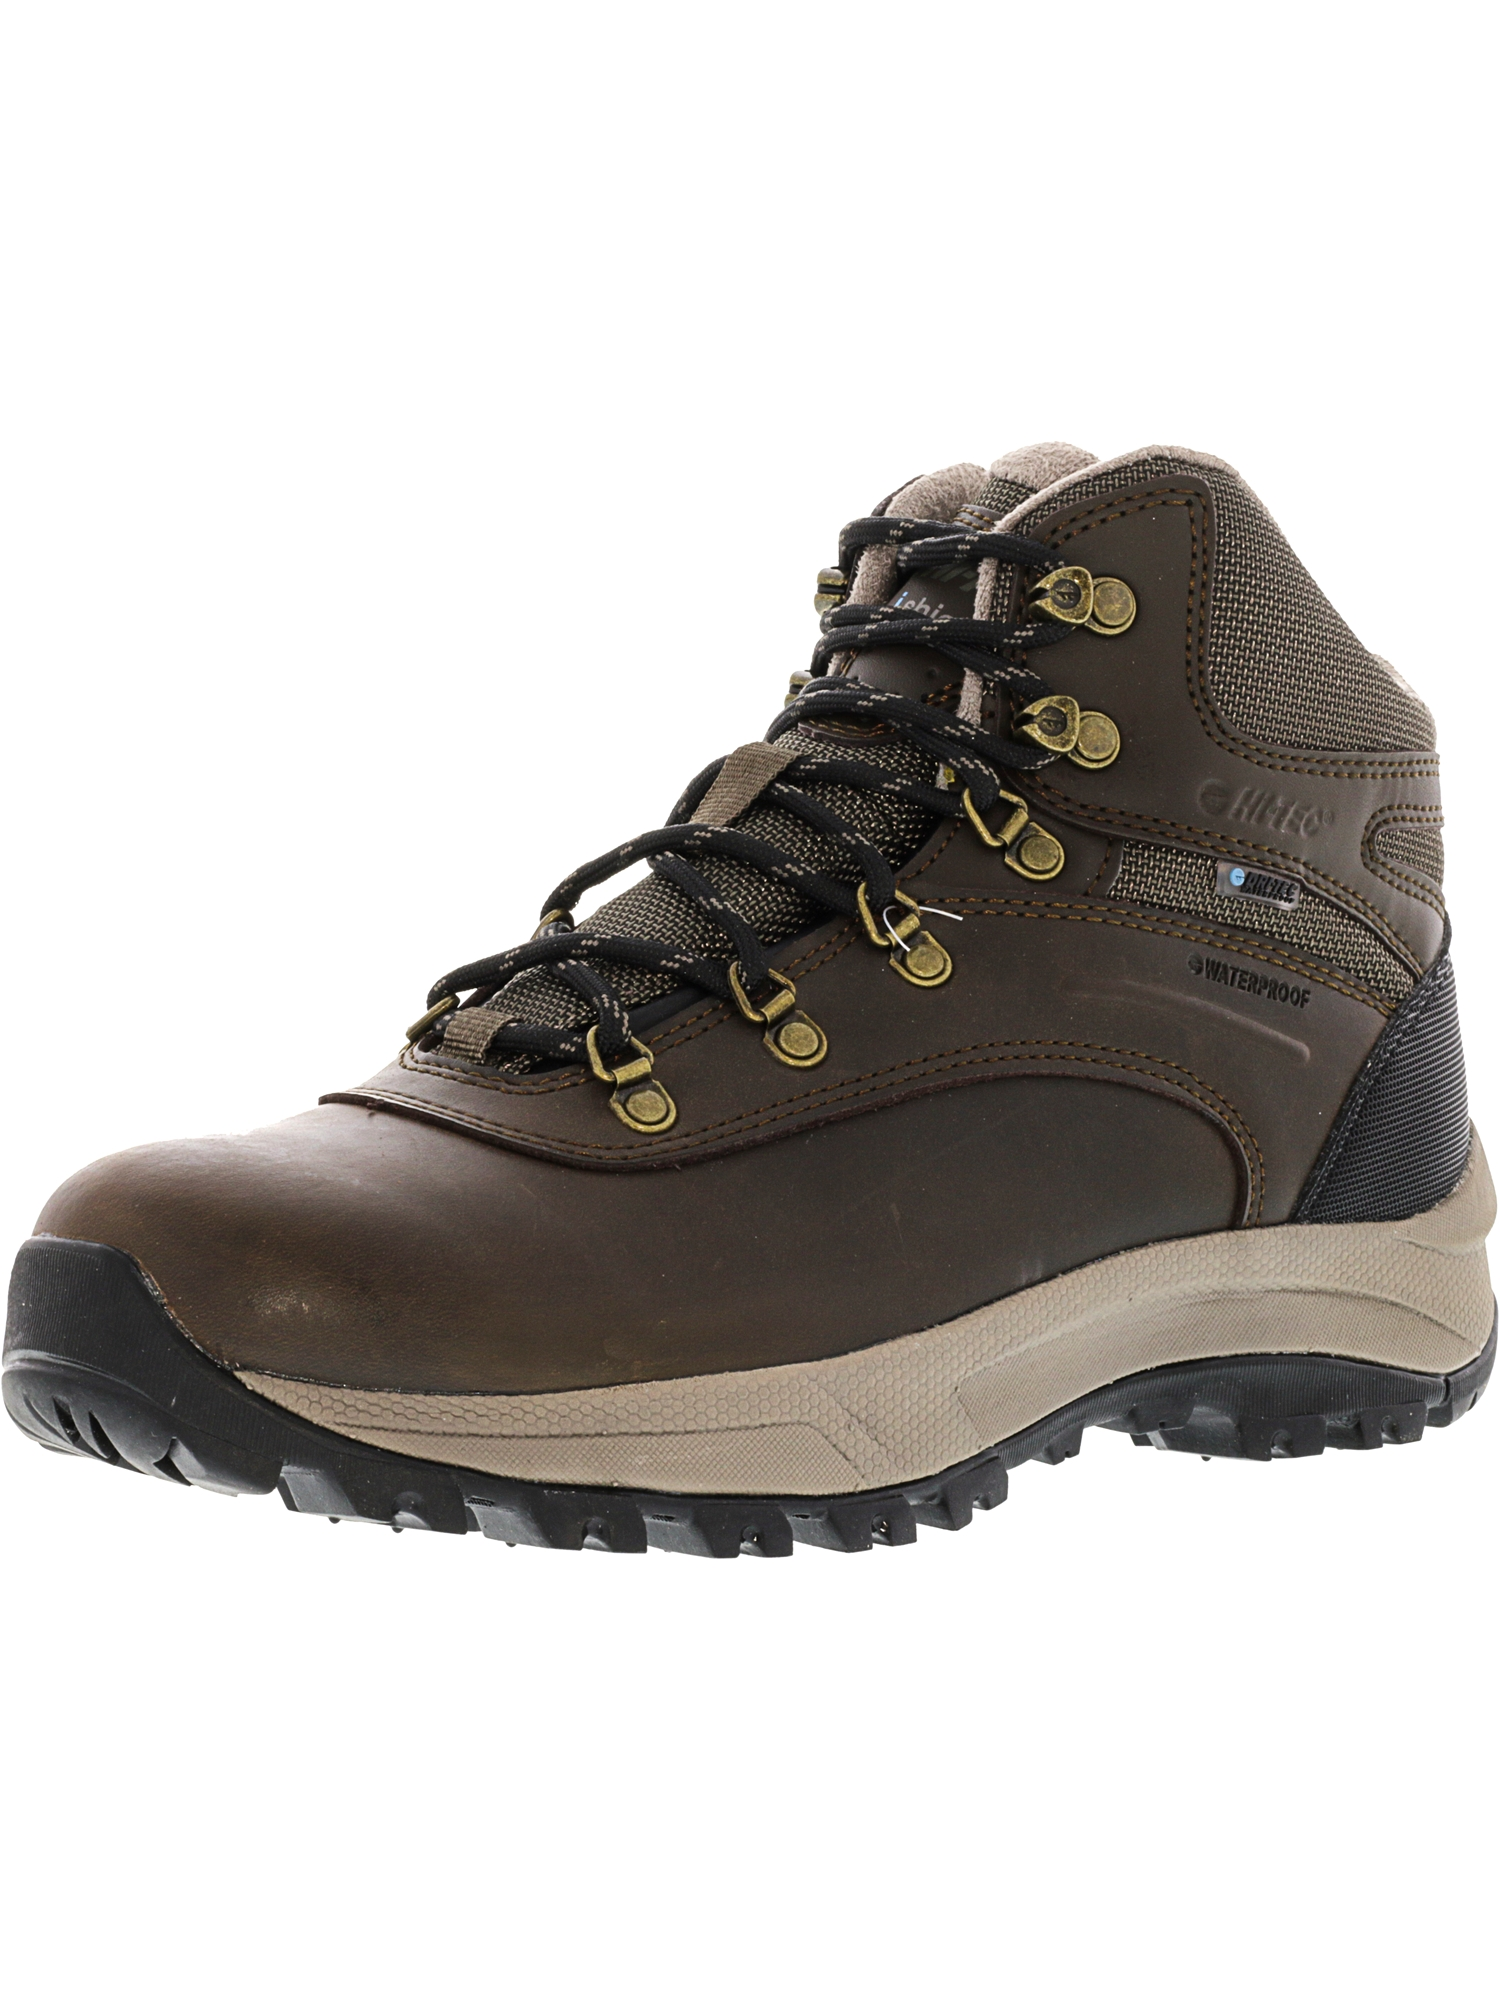 Women's Hi-Tec Altitude VI i Waterproof Boot by